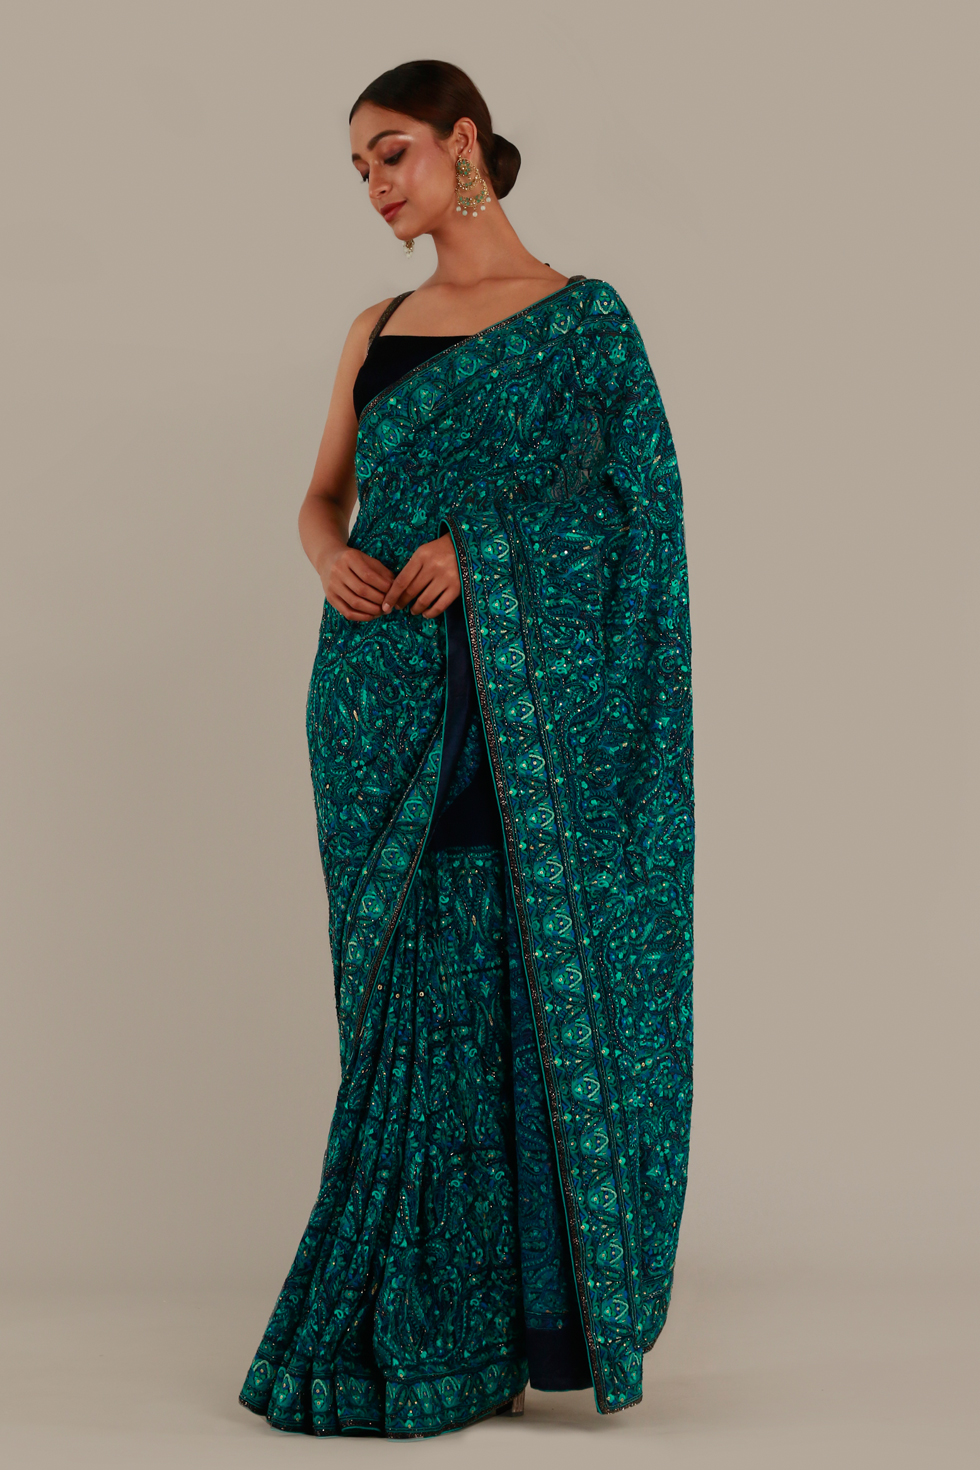 Emerald green classic saree with coloured thread work and black choli with embroidered straps